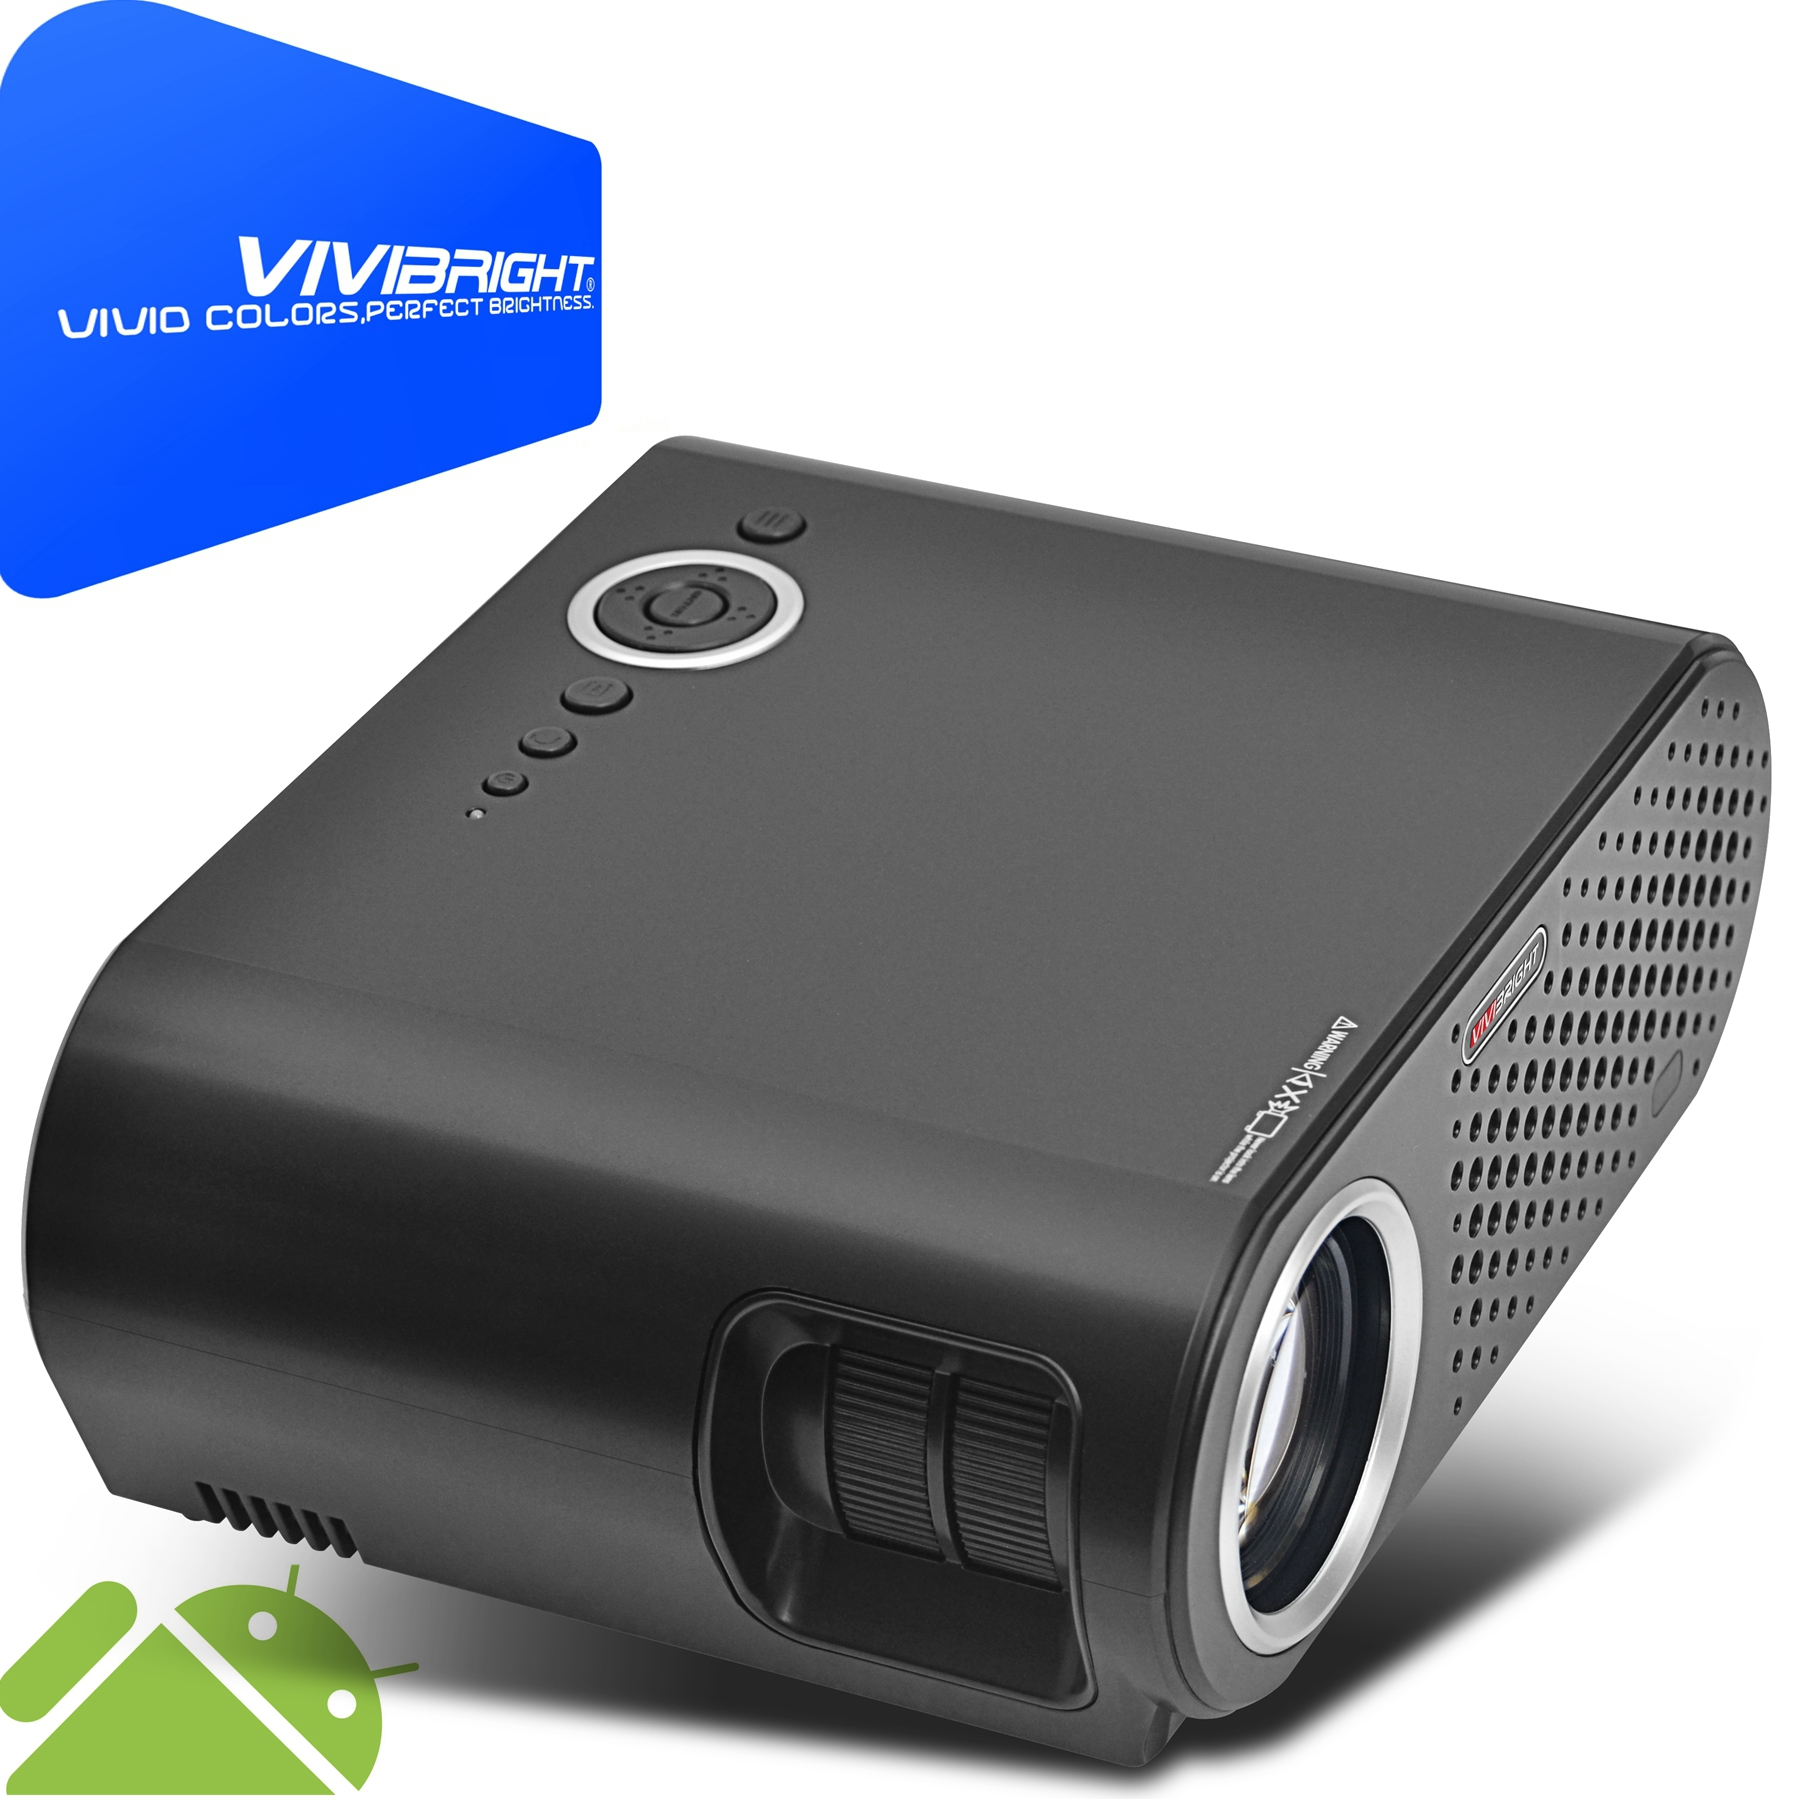 HD LED PROJECTORS LED Home Theater Movie Video Pocket Mini Projector GP90